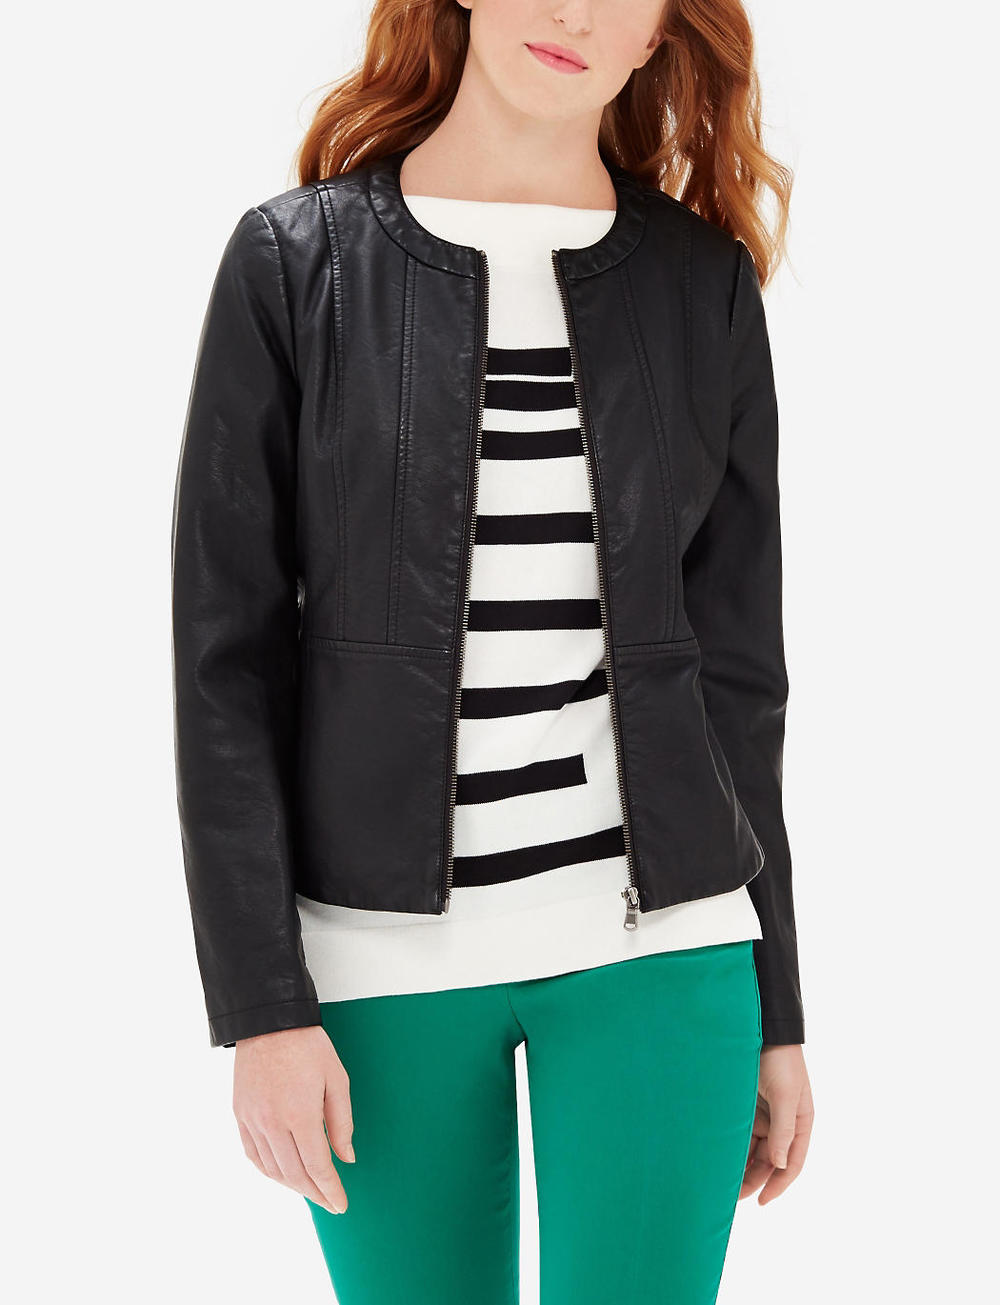 Faux Leather Jacket. The Limited. Was: $159 Now: $95.